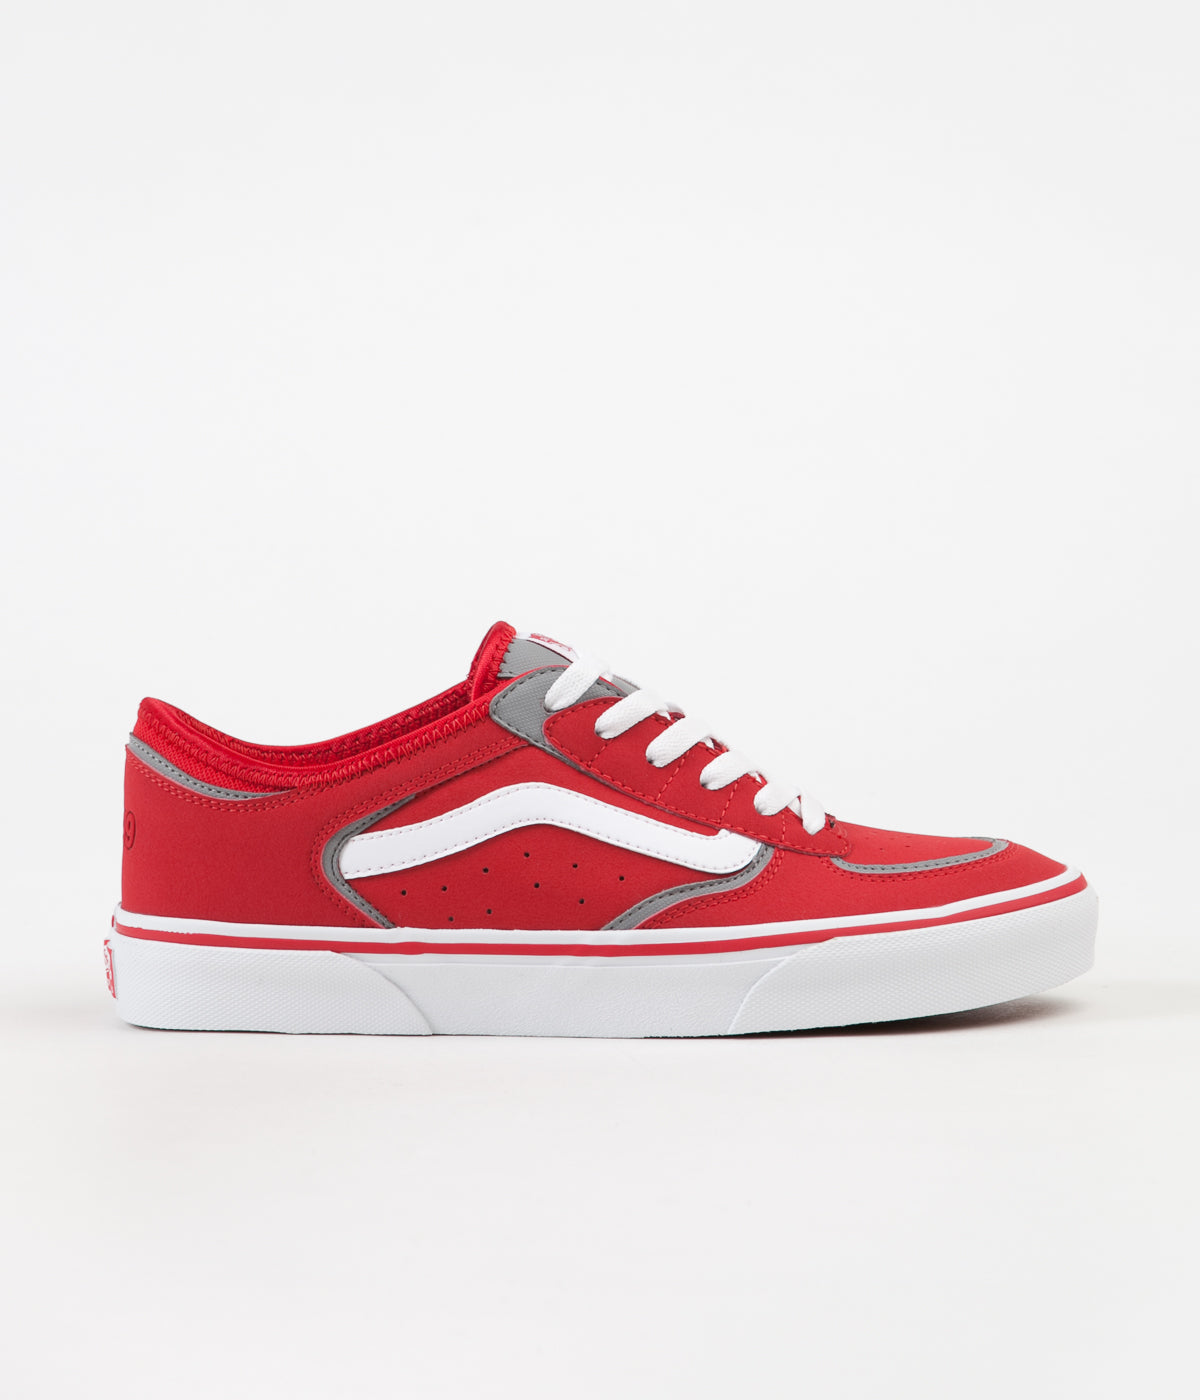 19c82a27b7a Vans Rowley Classic LX Shoes - Racing Red   White